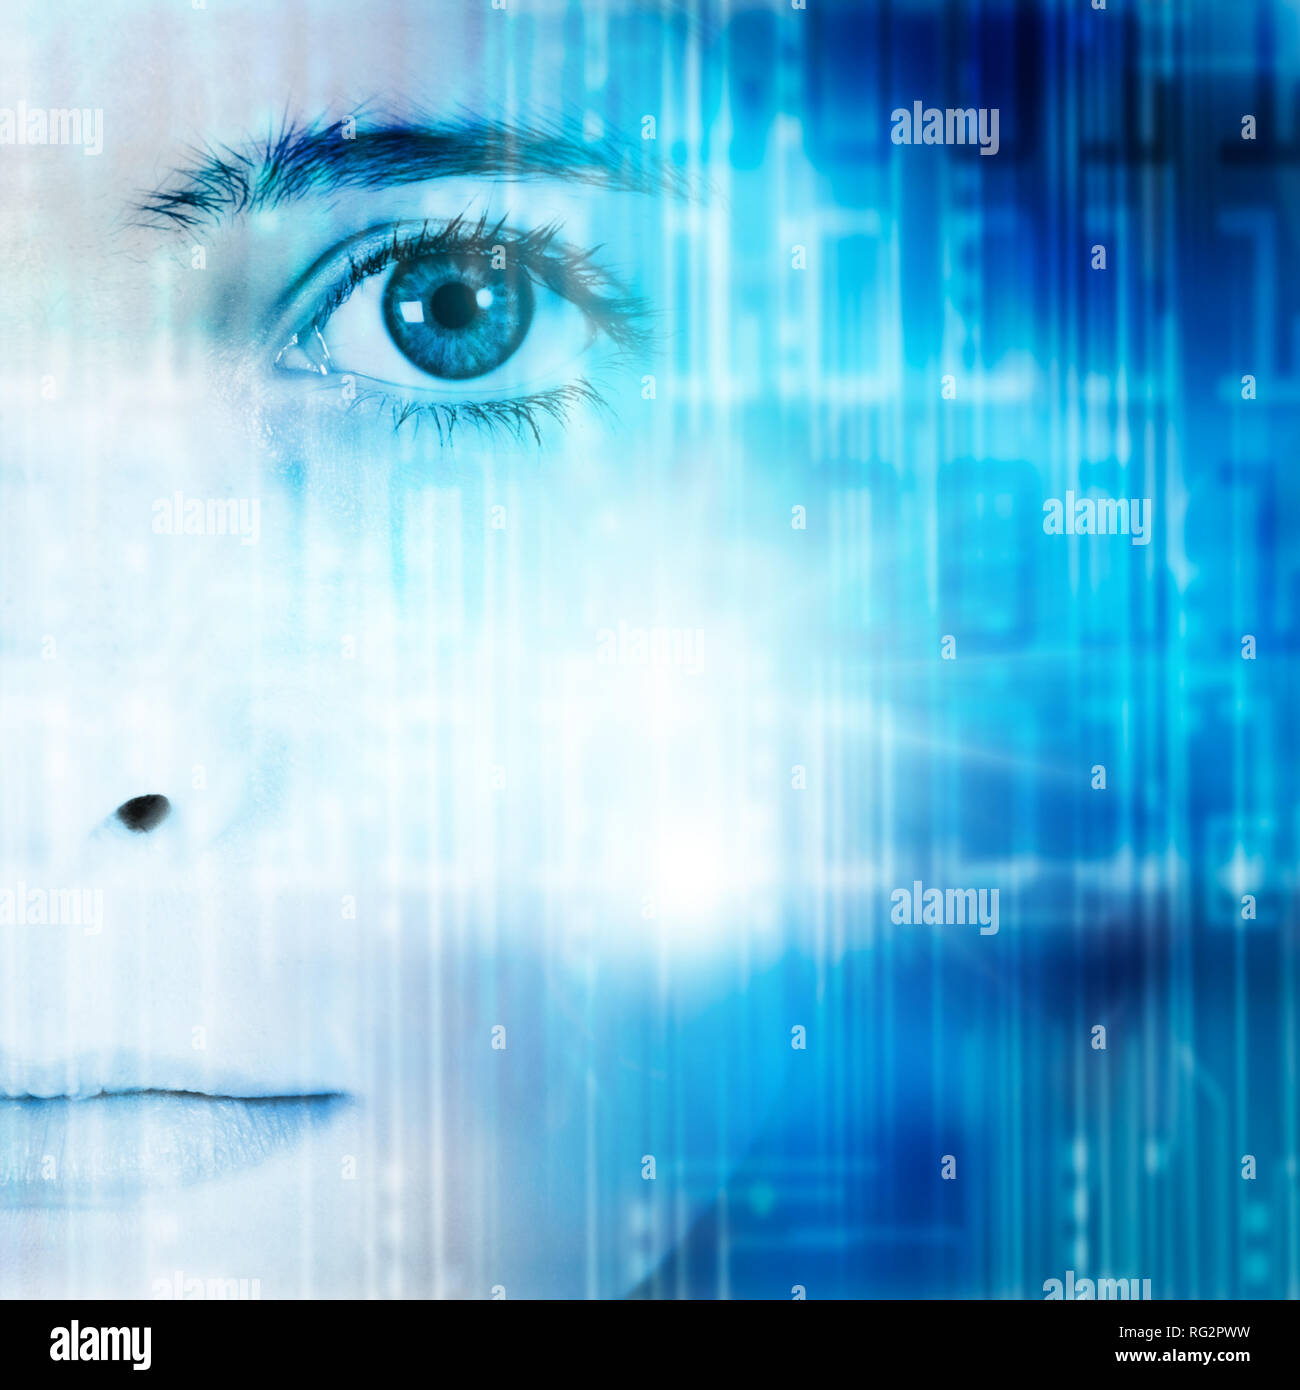 face of a girl looking straight at us and a technology background as concept for future generations - Stock Image